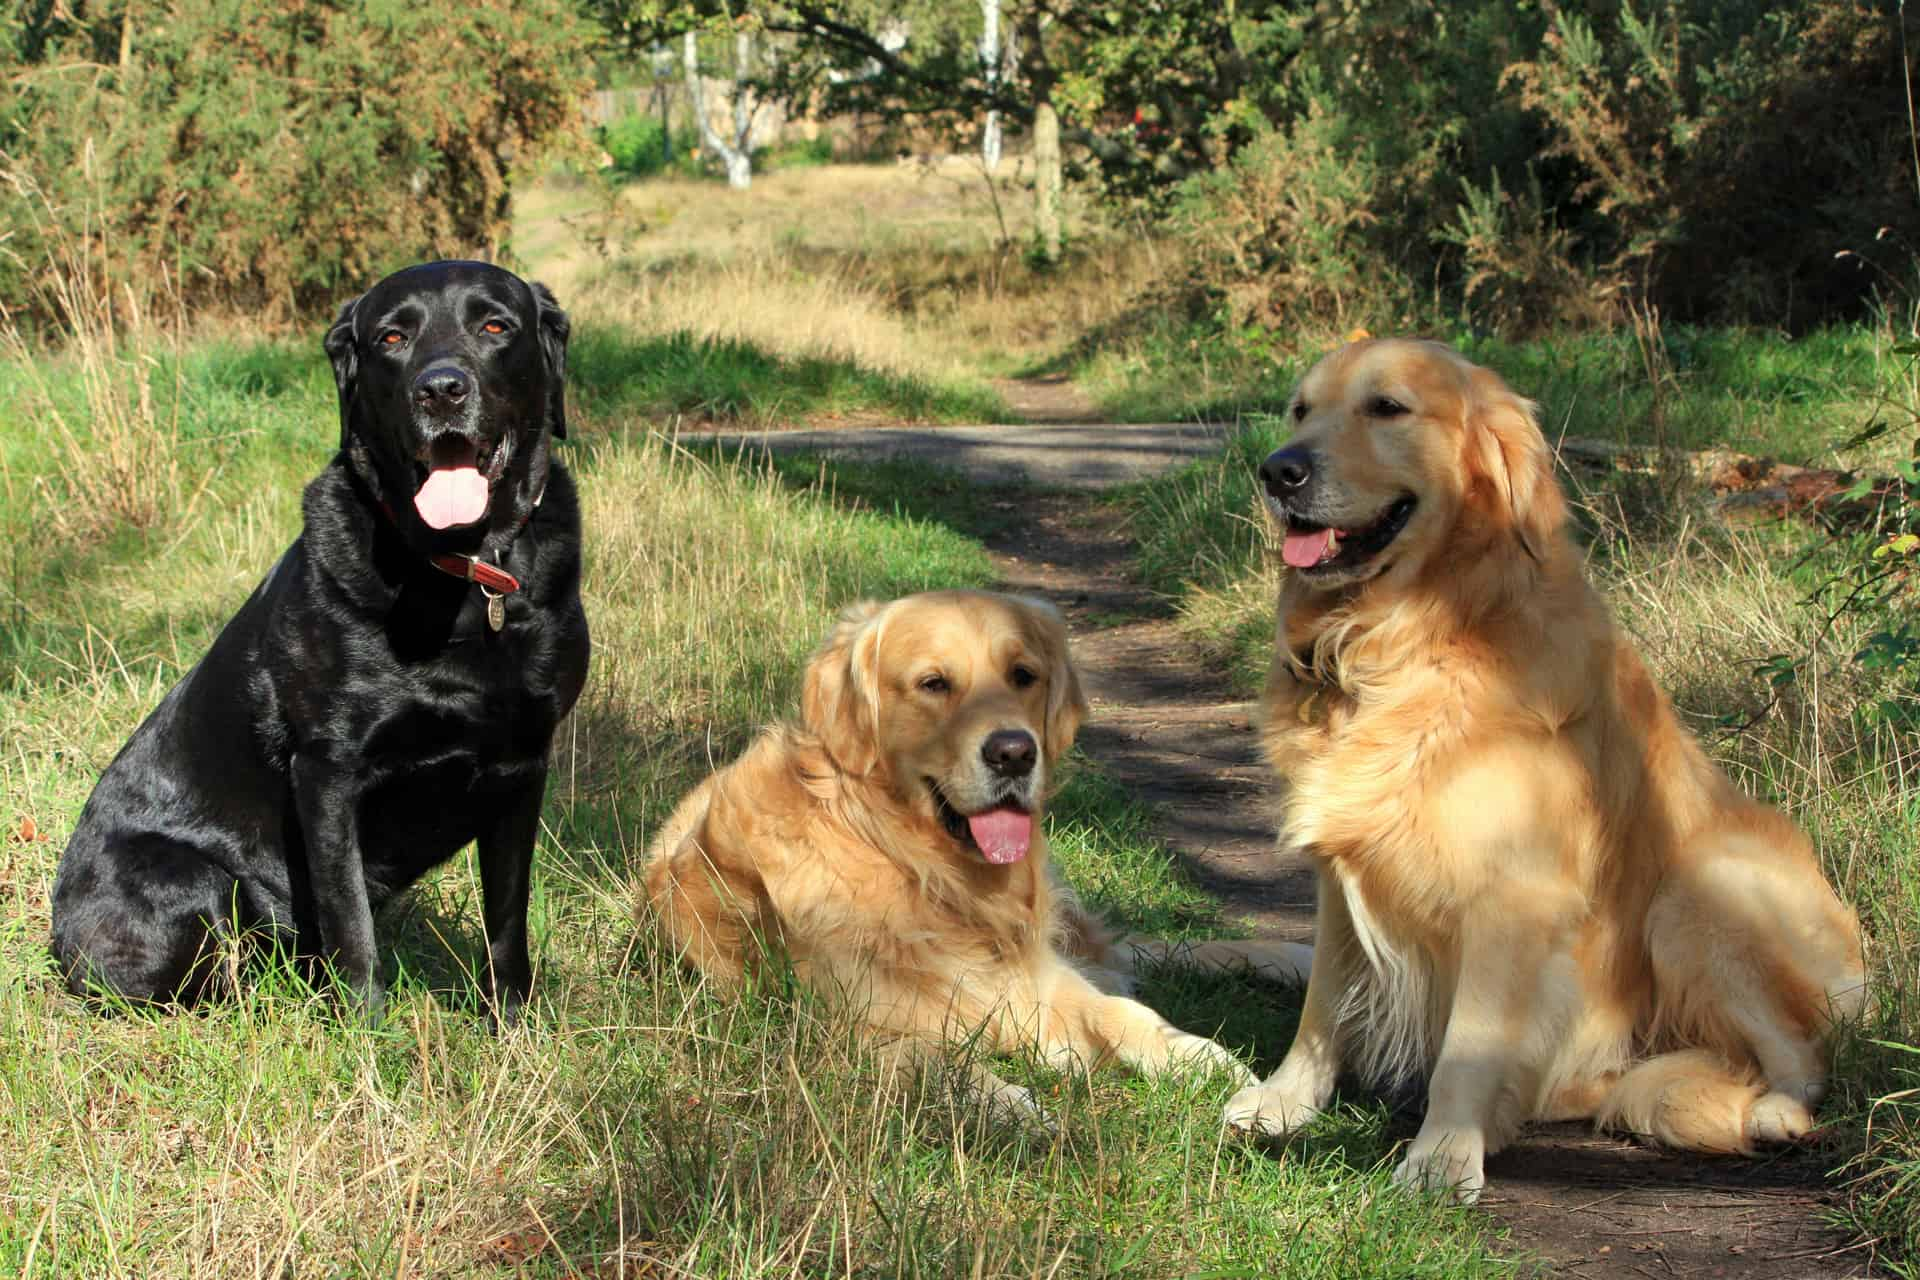 Do Labrador retriever sheds more than Golden retriever?